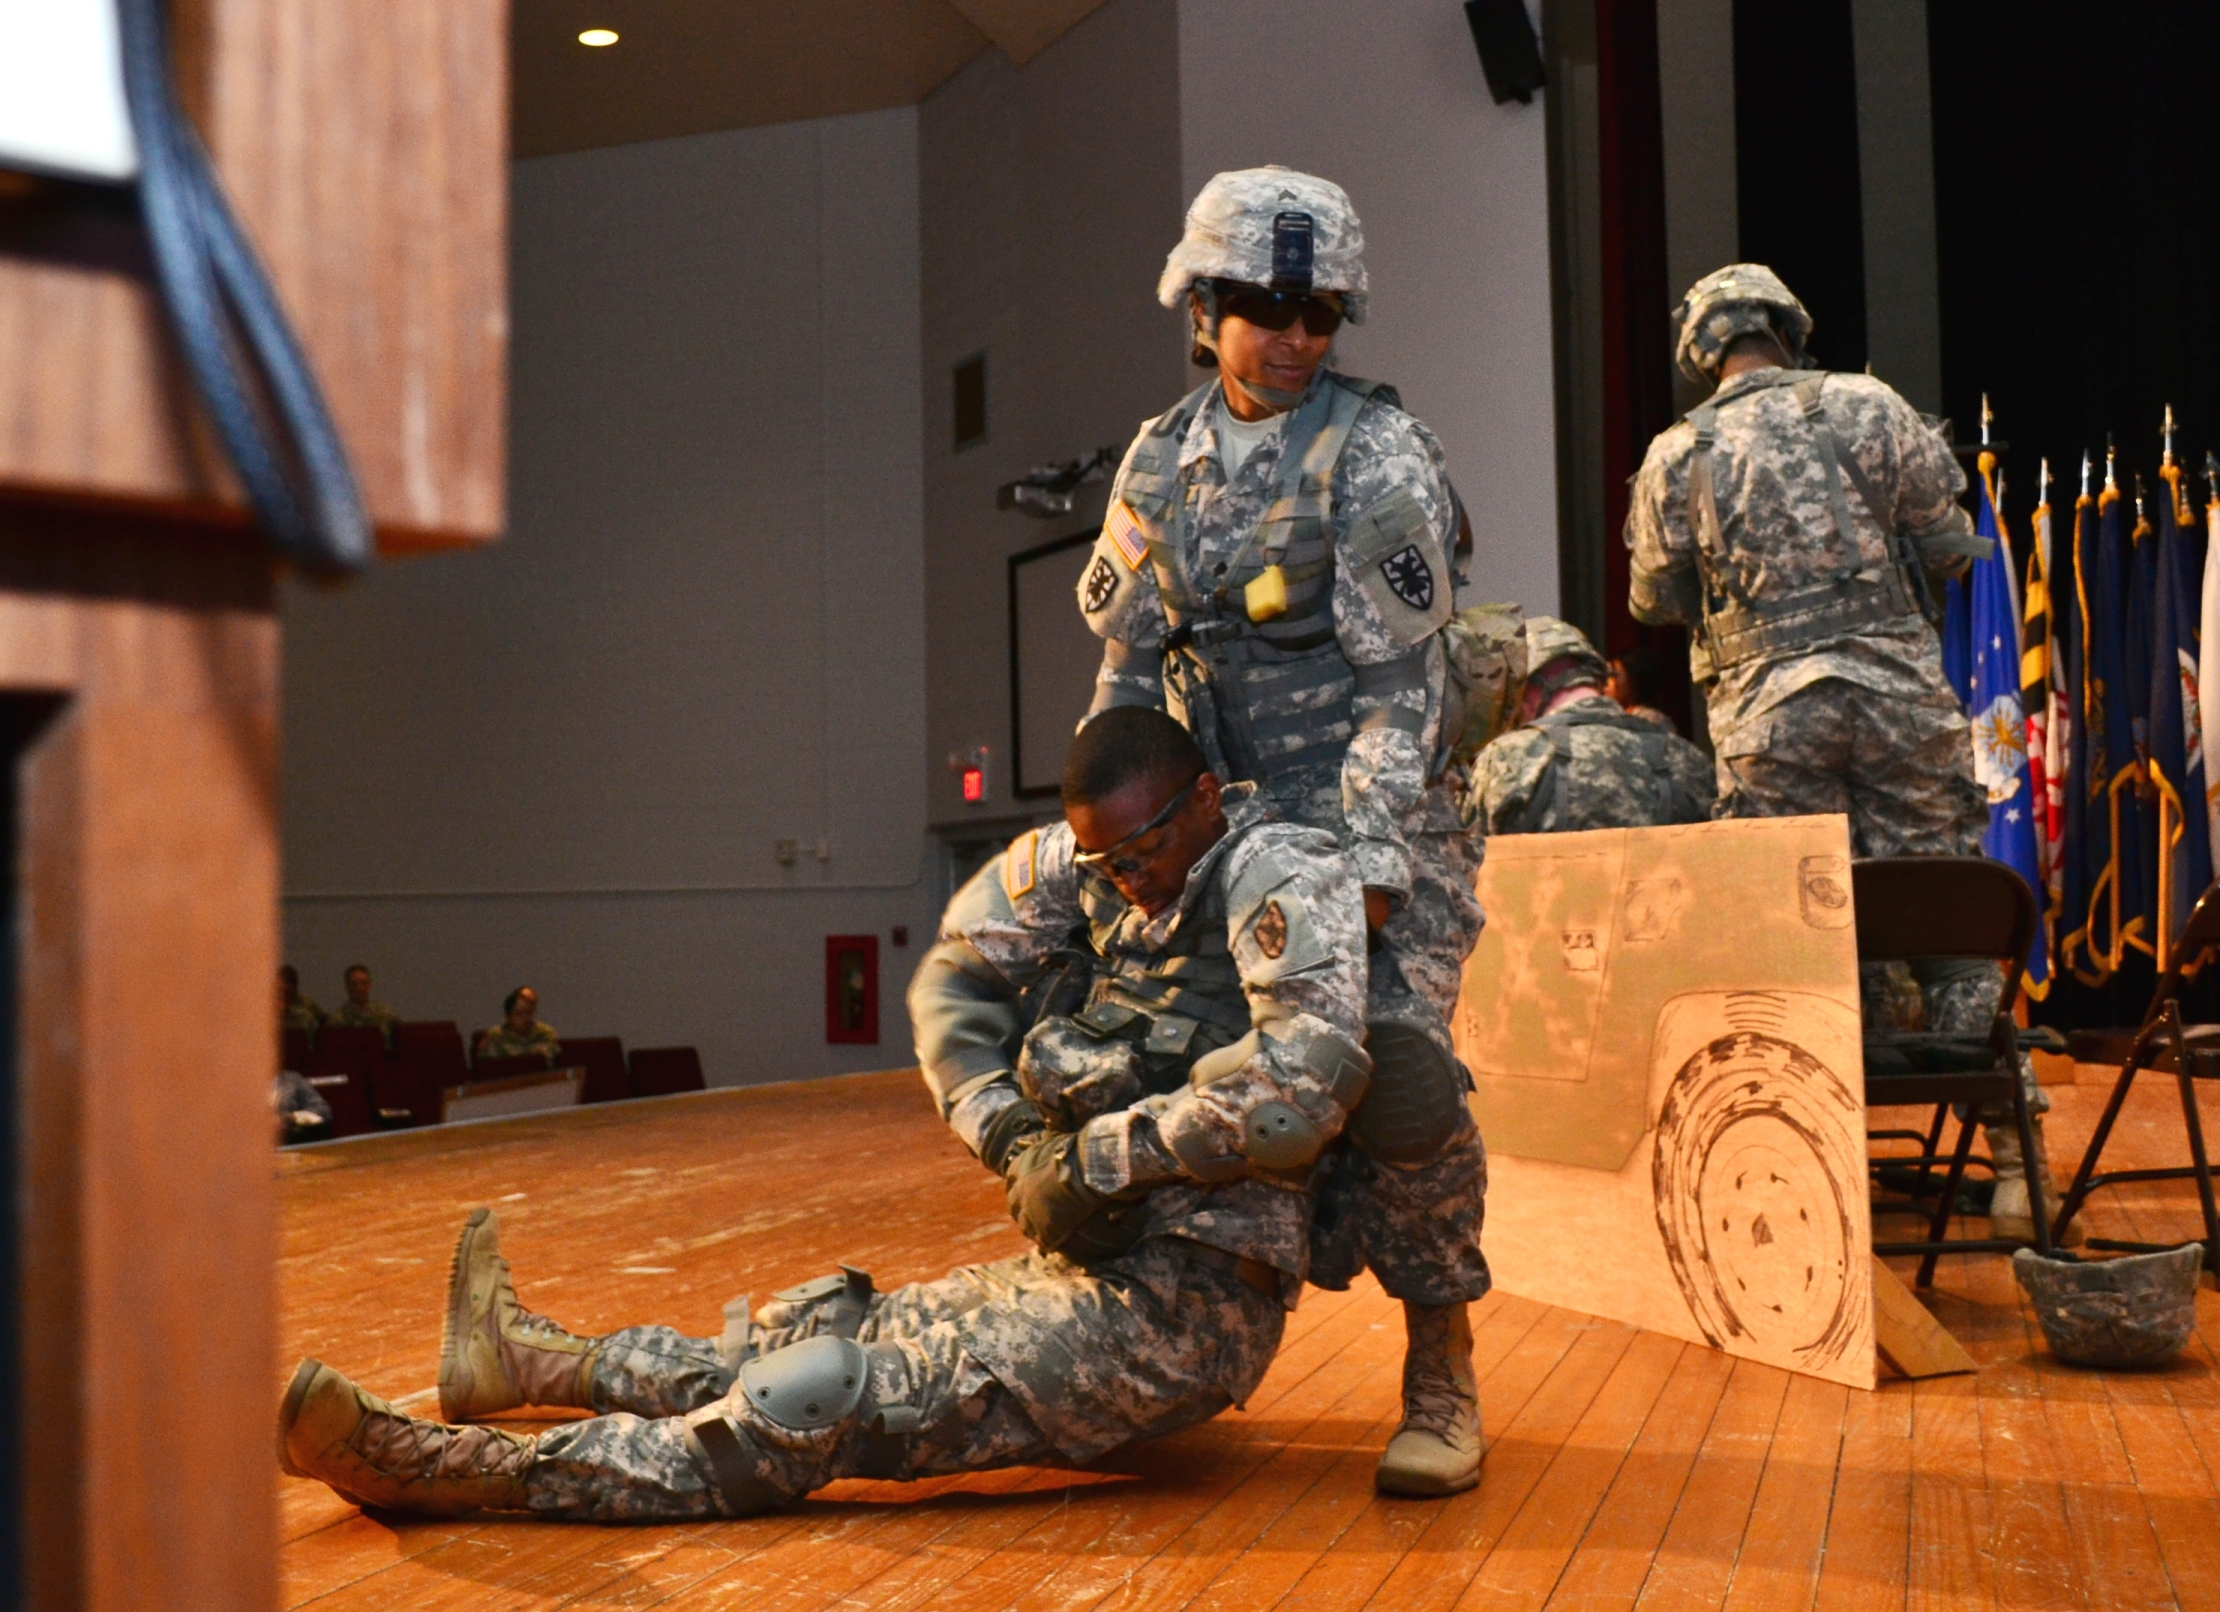 fort eustis women 27112014 ft eustis 'barricaded subject' surrenders  photo of fort eustis  – the joint base langley-eustis twitter account said the soldier who.